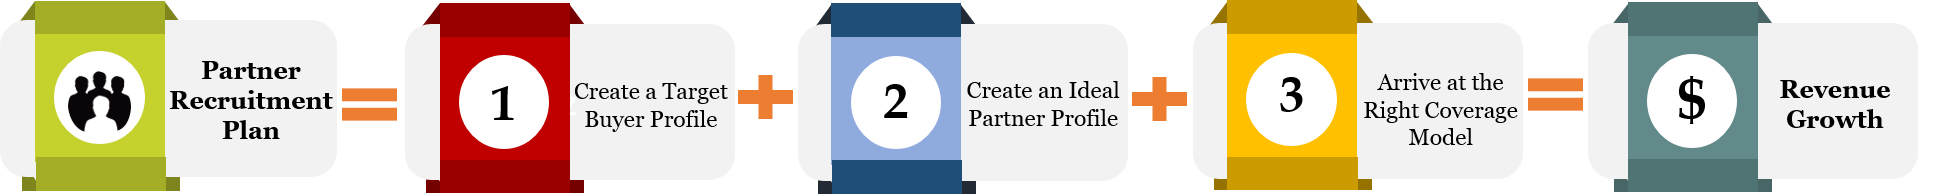 Channel partner profiling strategy in the Channel Partner Recruitment Formula